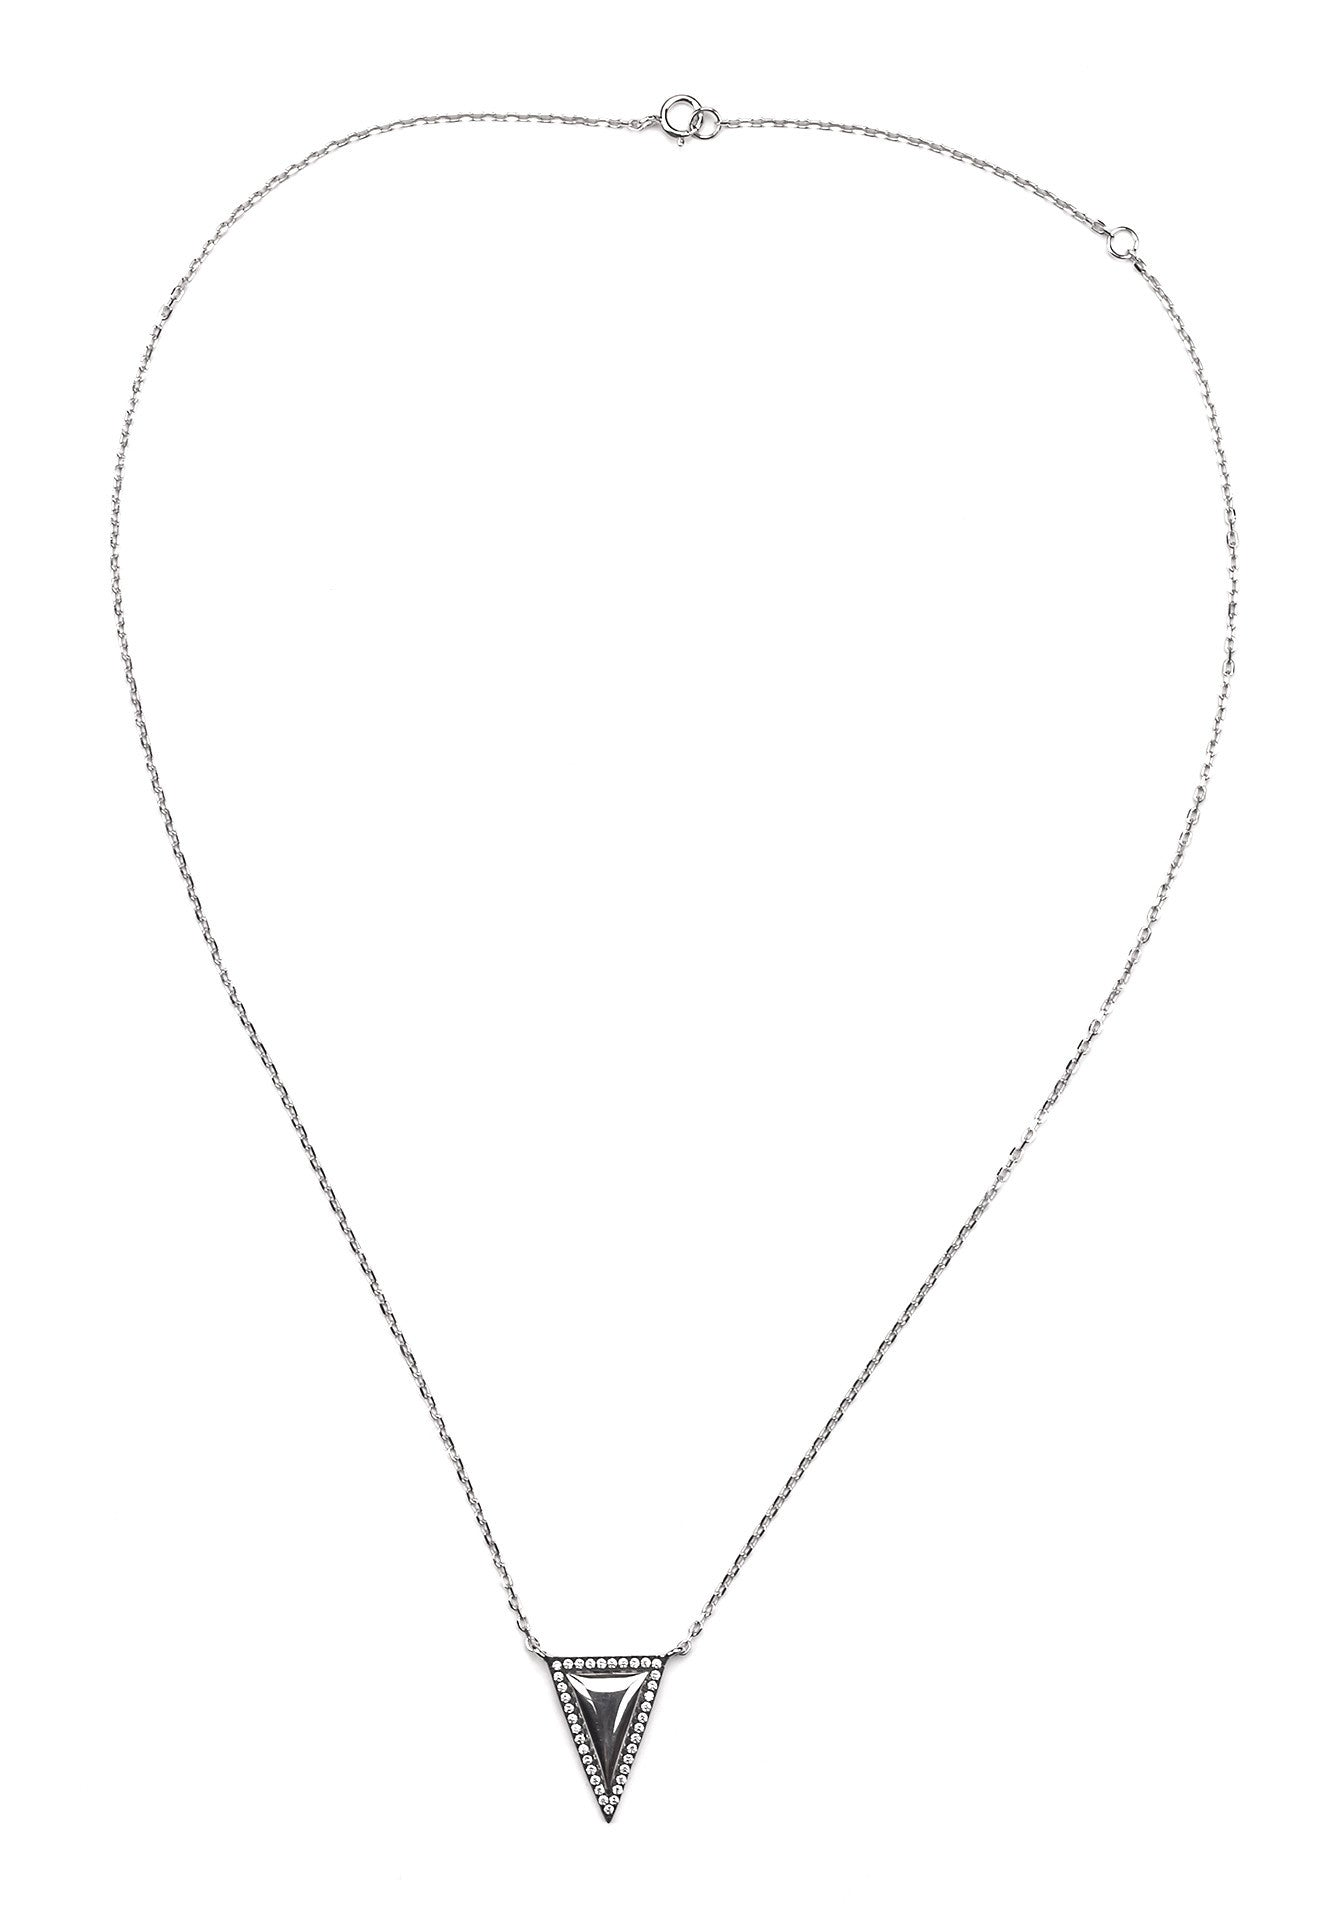 Mirrored Triangle Pendant - Silver 925